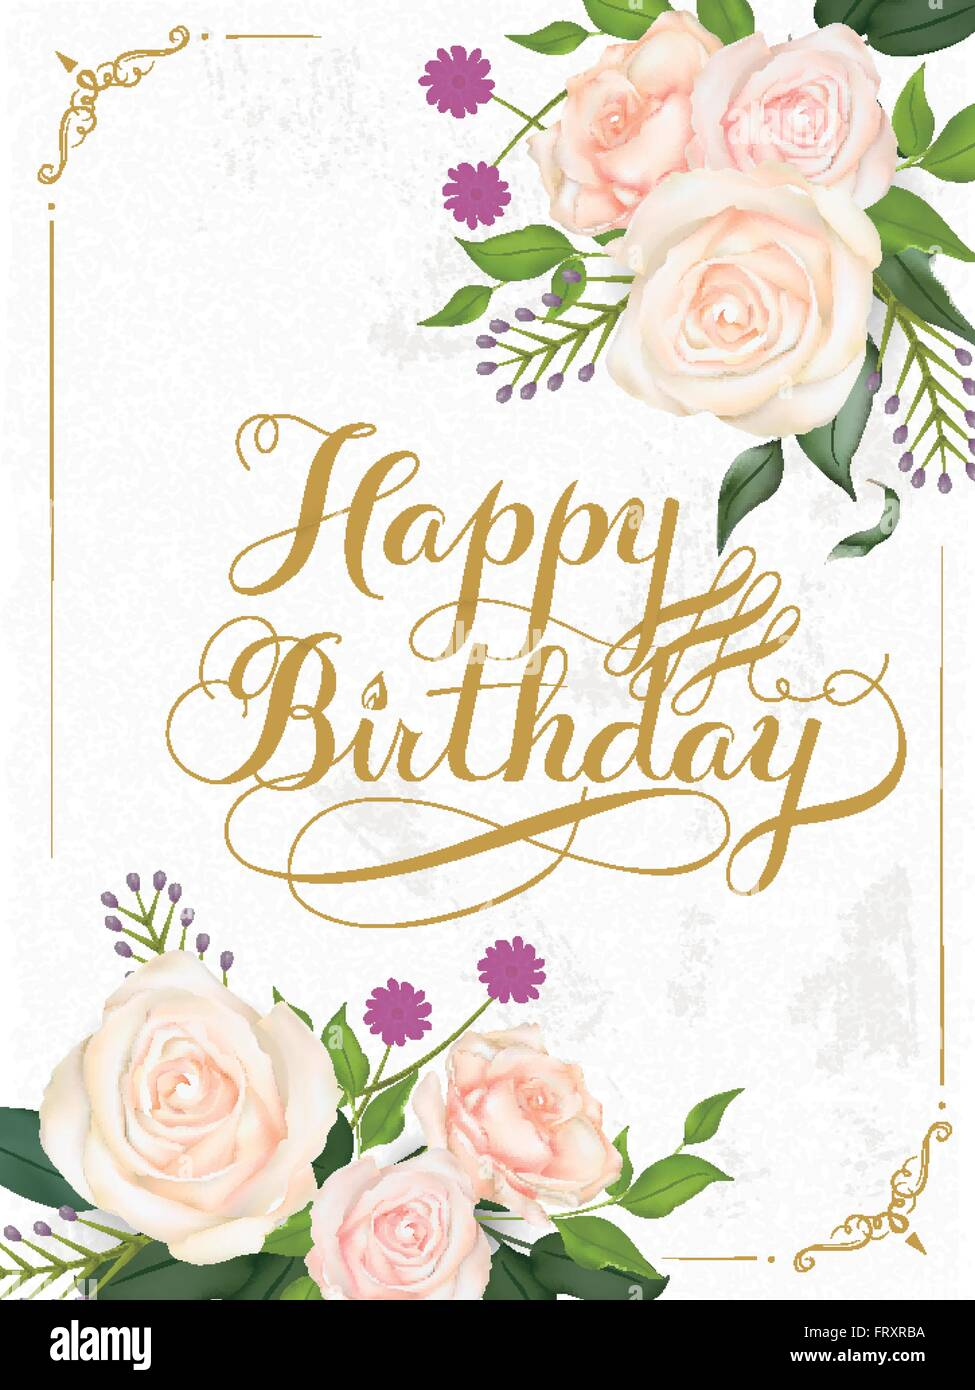 Romantic Happy Birthday Calligraphy Design With Floral Elements Frxrba Retro Vintage Typographic